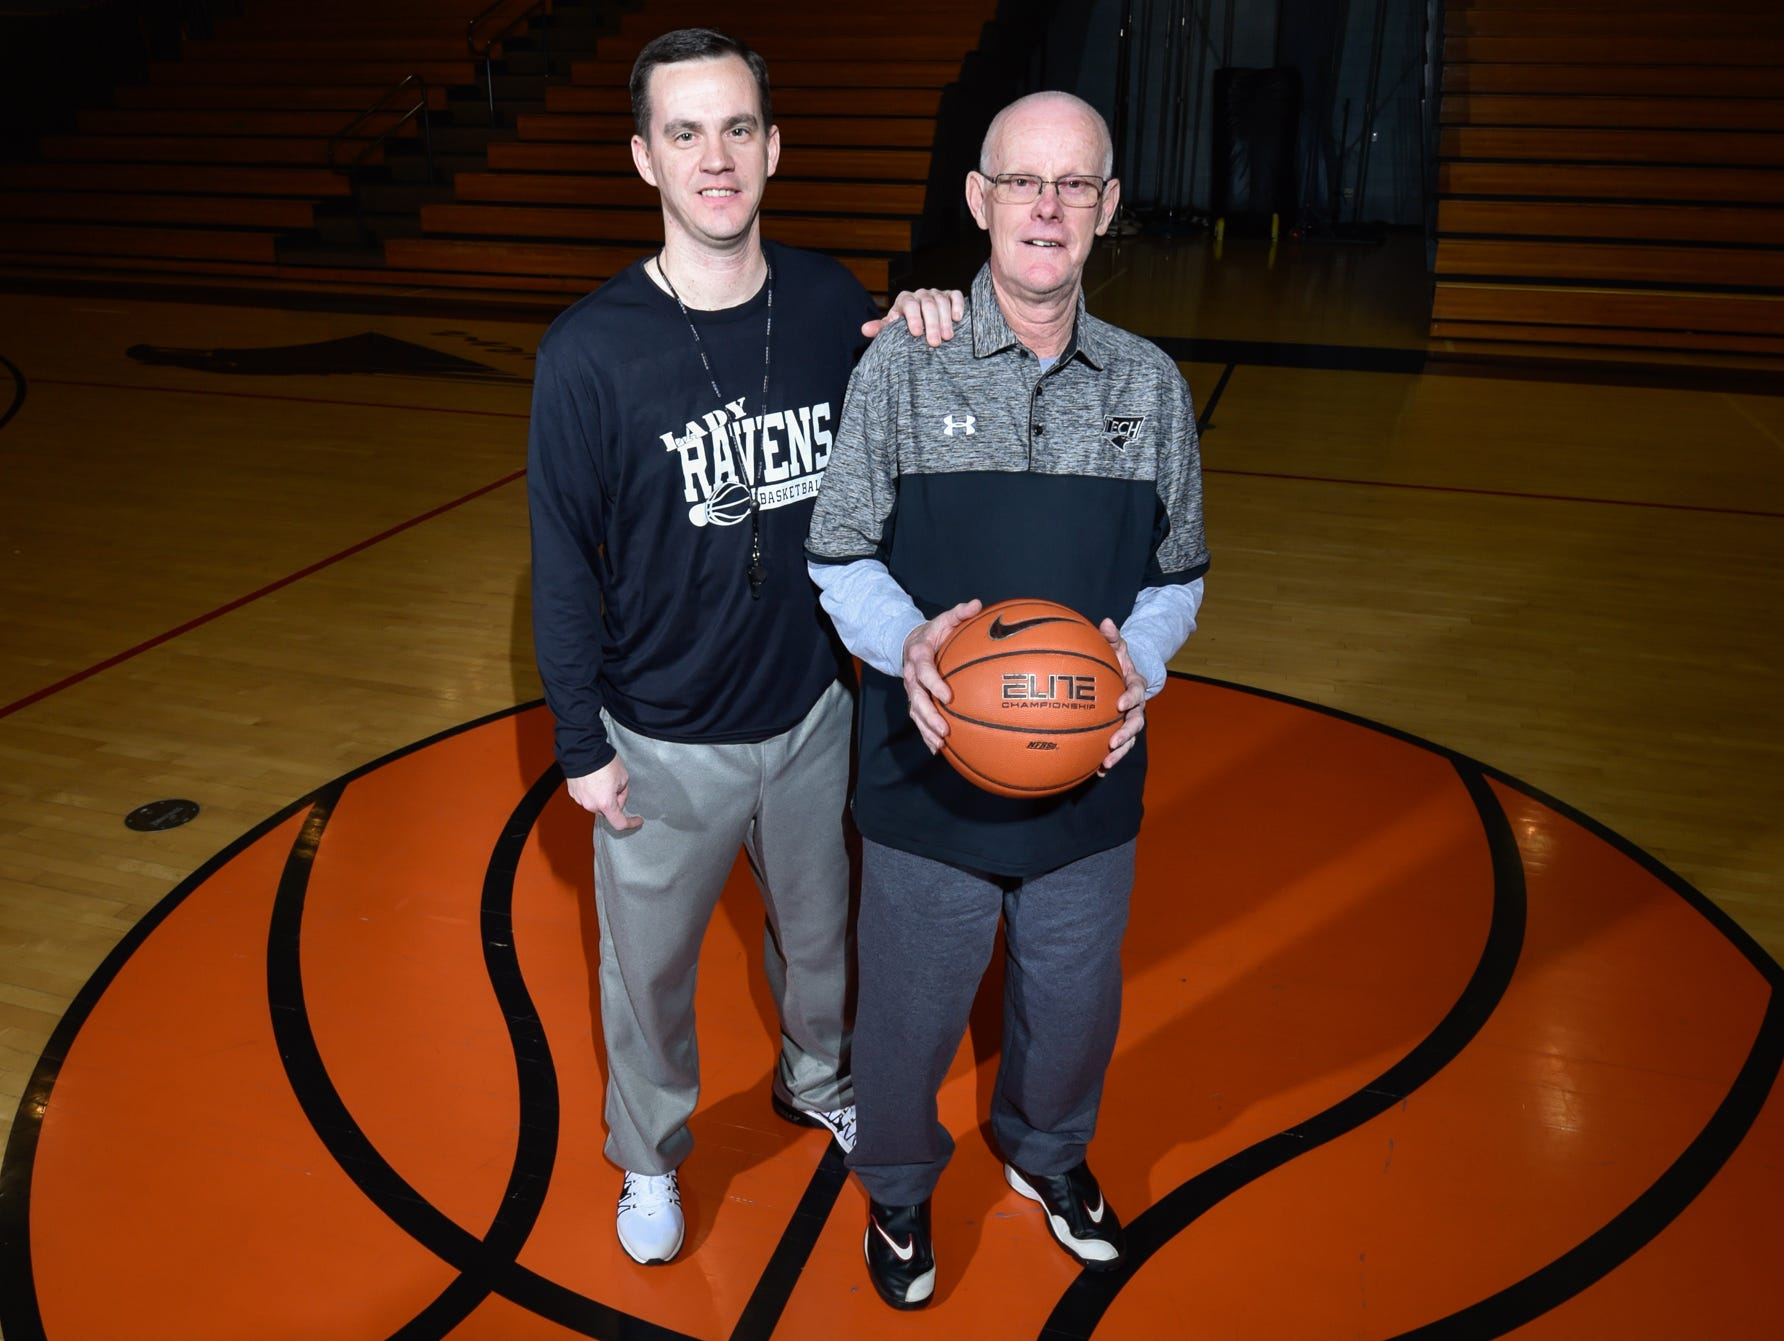 Sussex Tech girls basketball coach Chester Davis (right), who recently earned his 500th career coaching win, poses with his son Justin, a longtime assistant who will become the Ravens' head coach next season.